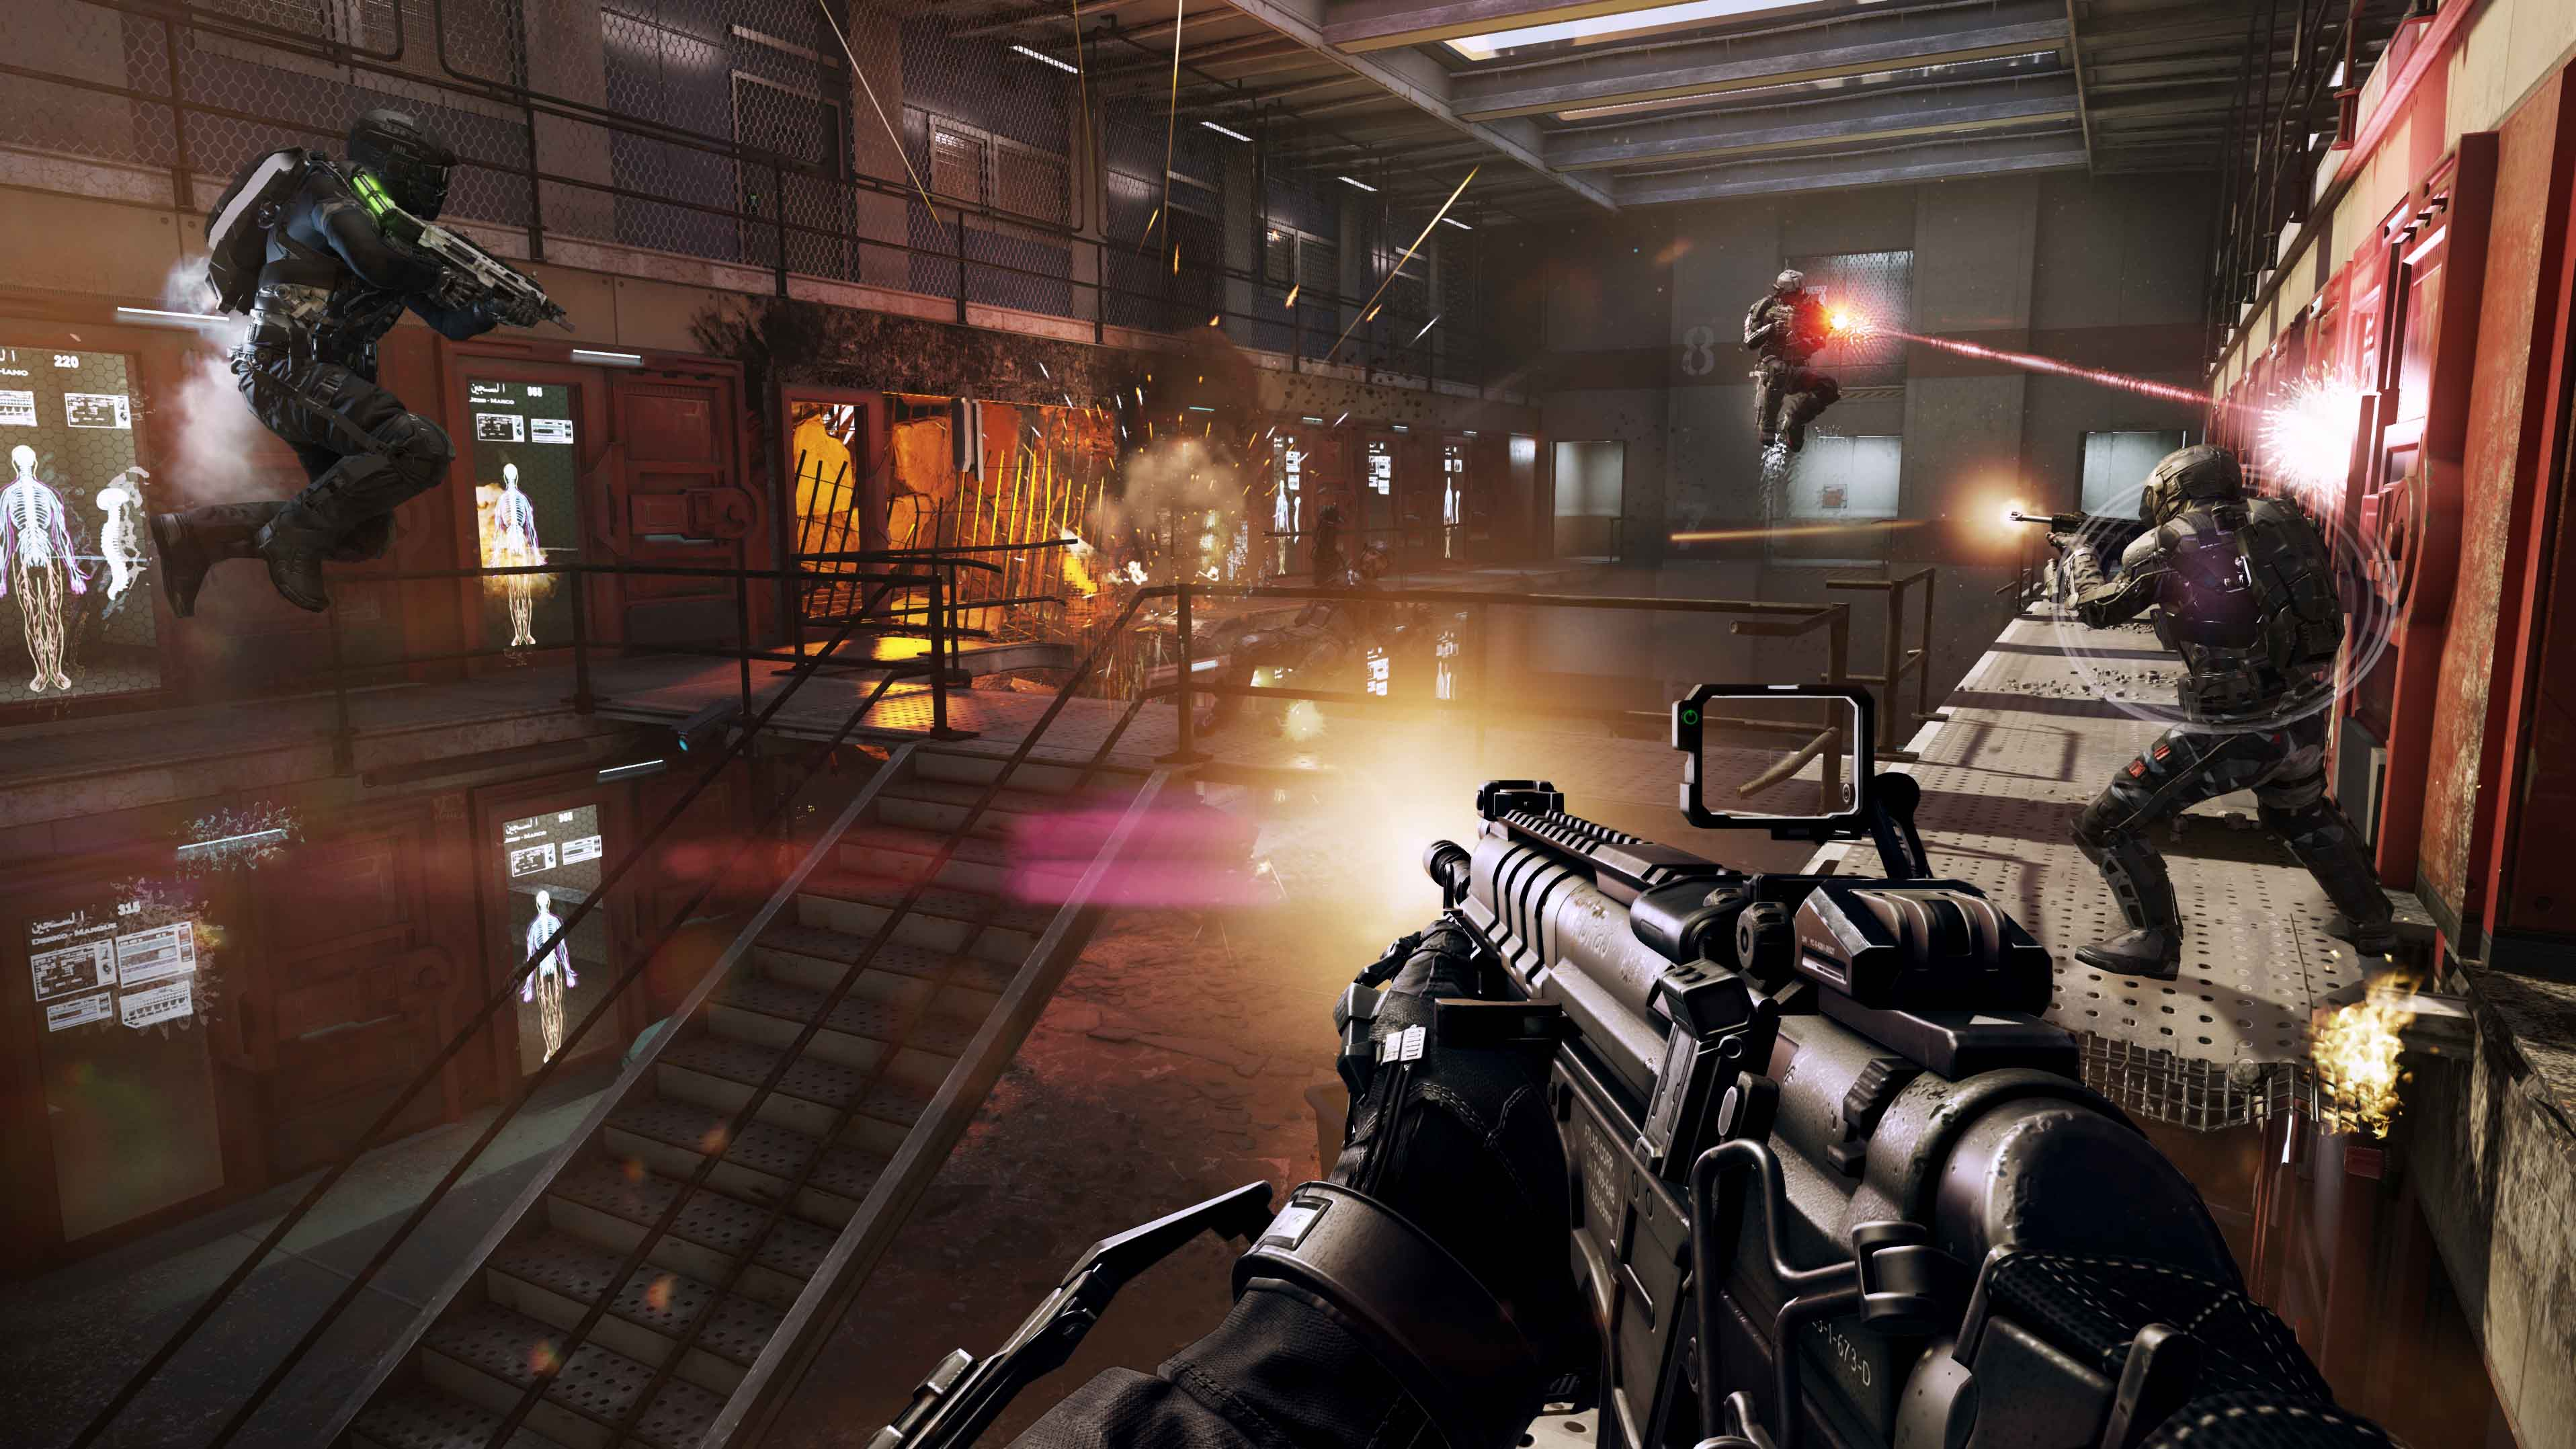 تریلر جدید بازی 2014 Call of Duty Advanced Warfare